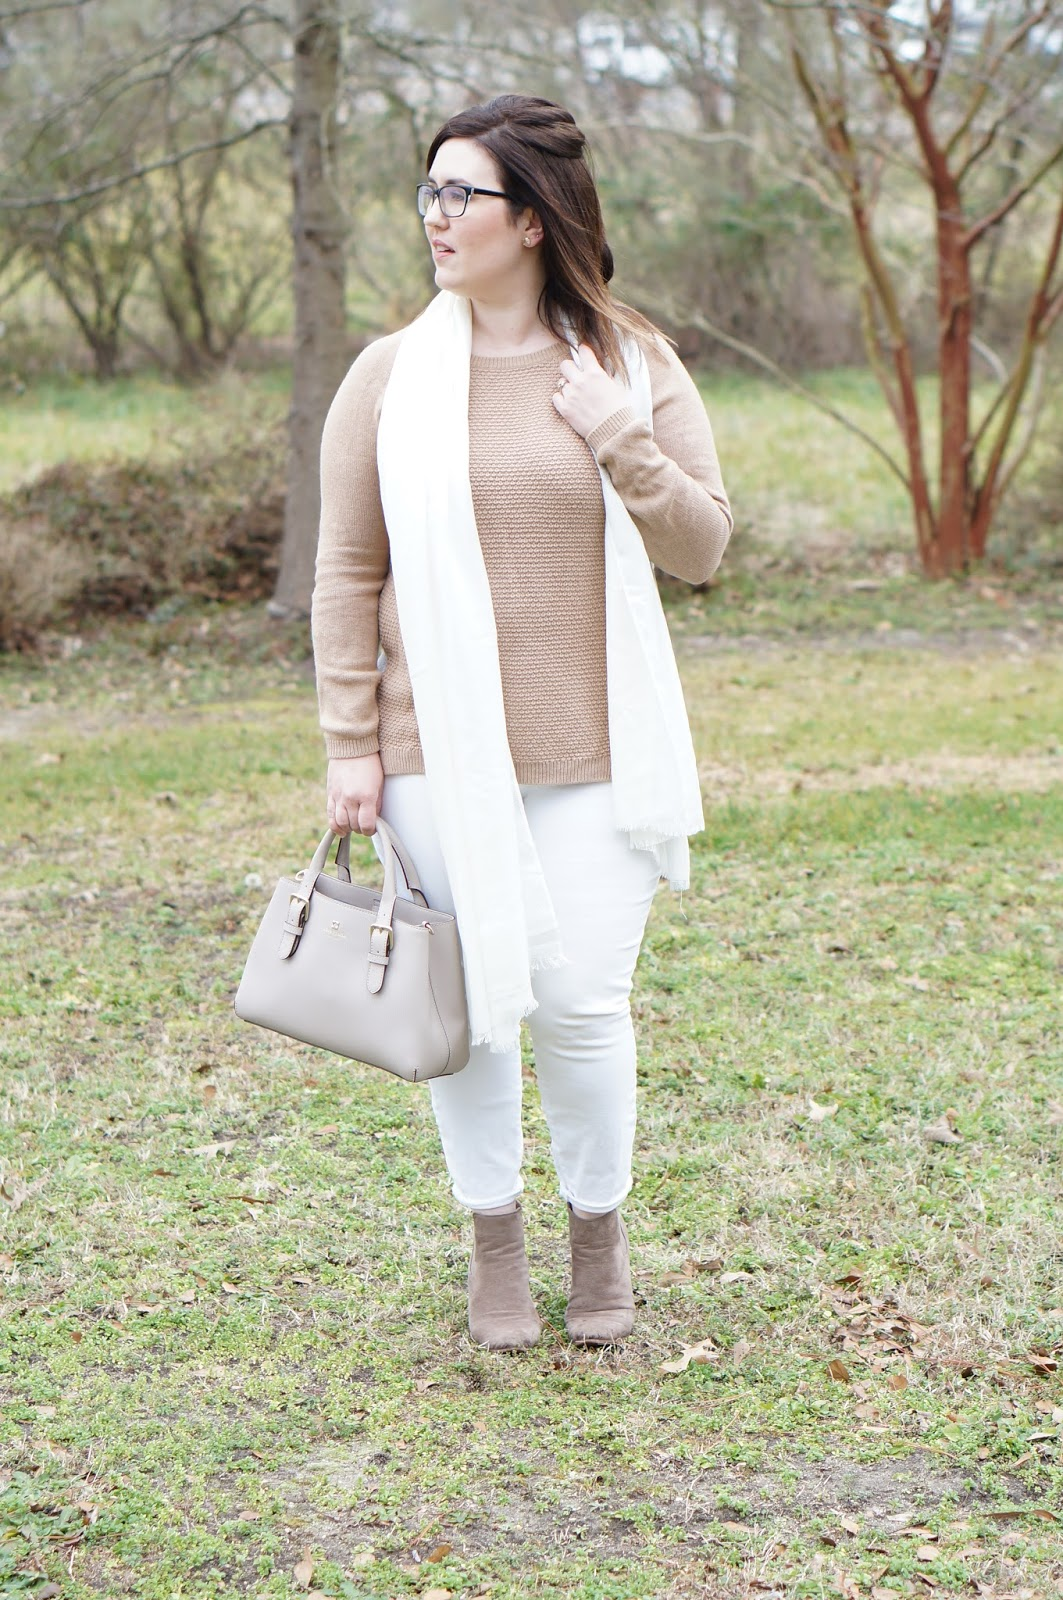 Rebecca Lately Winter Whites Loft Sweater Ann Taylor Skinny Curvy Jeans Taupe Booties Kate Spade Cove Street Provence Kate Spade Earrings